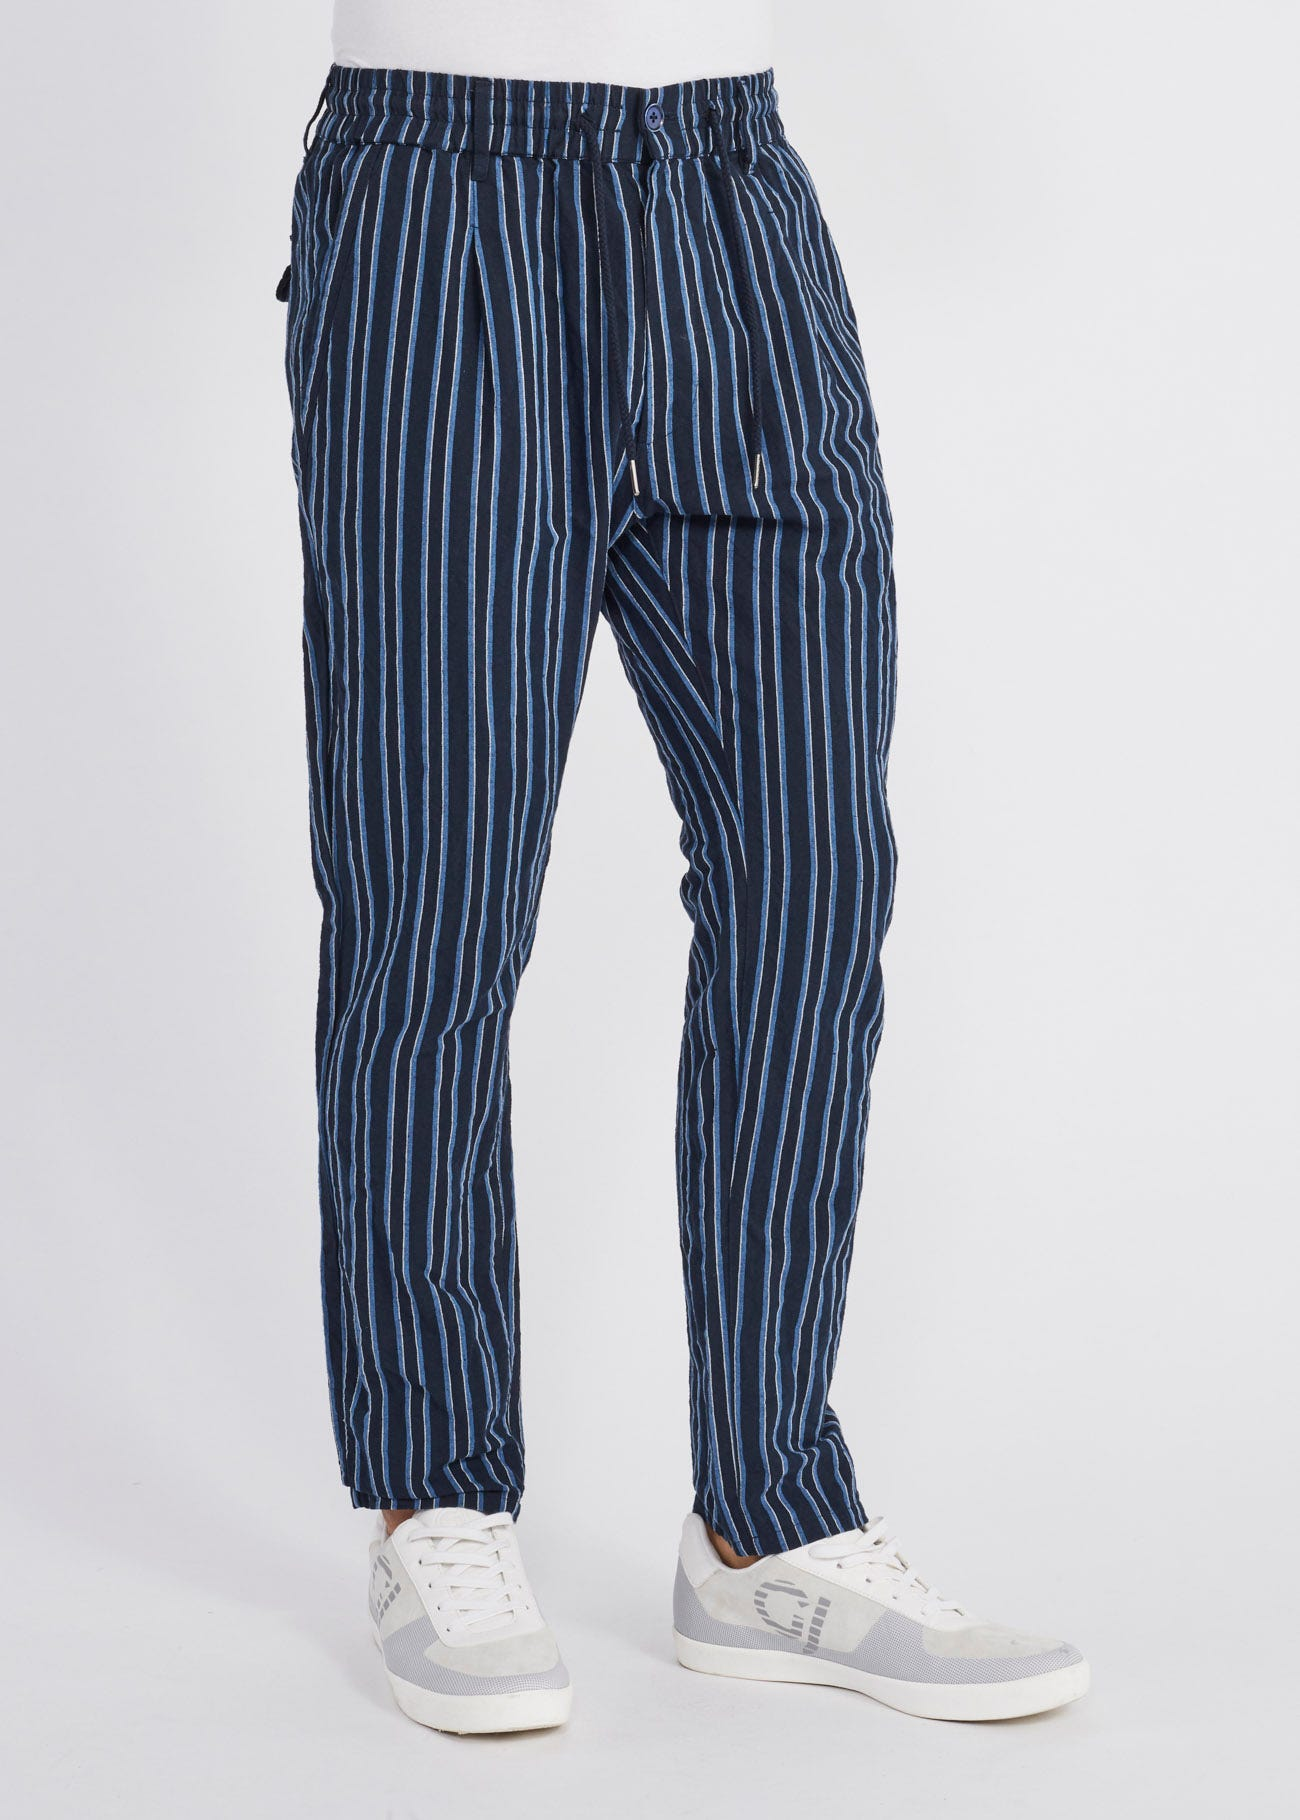 5ee3ffbcc4 Pinstriped jogging trousers